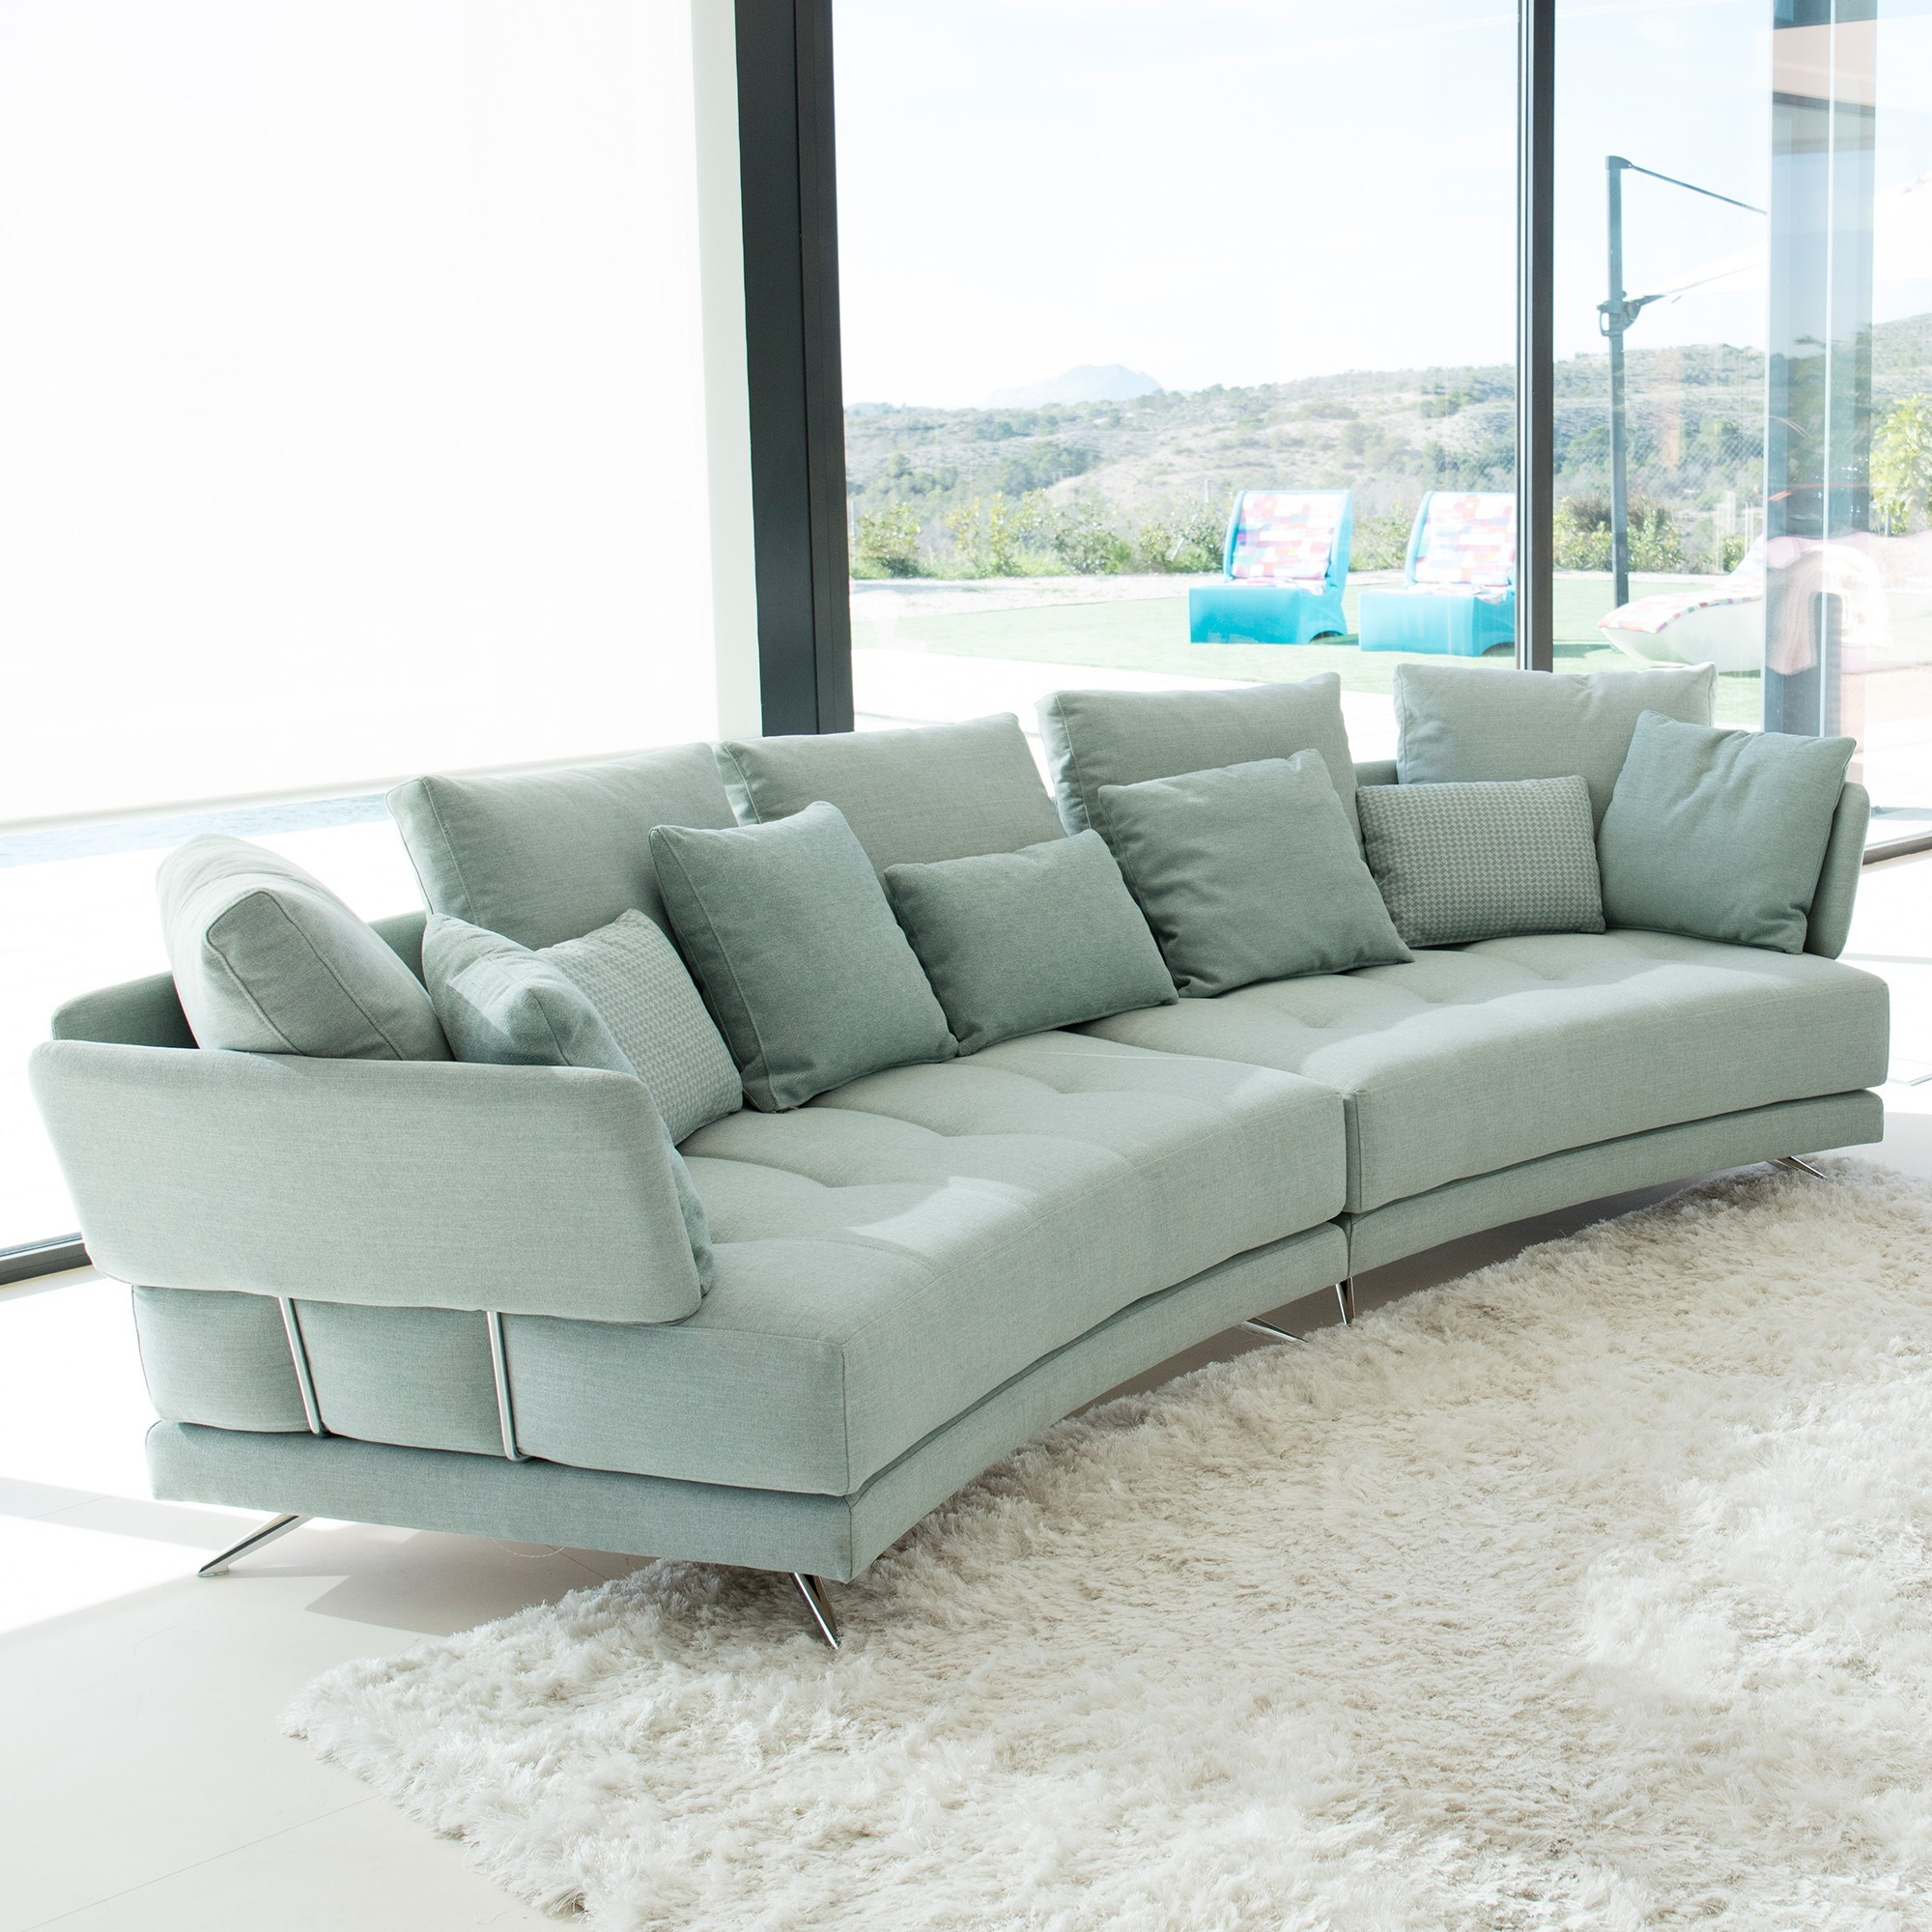 Modular Furniture Sofa: Fama Pacific Curved Modular Sofa